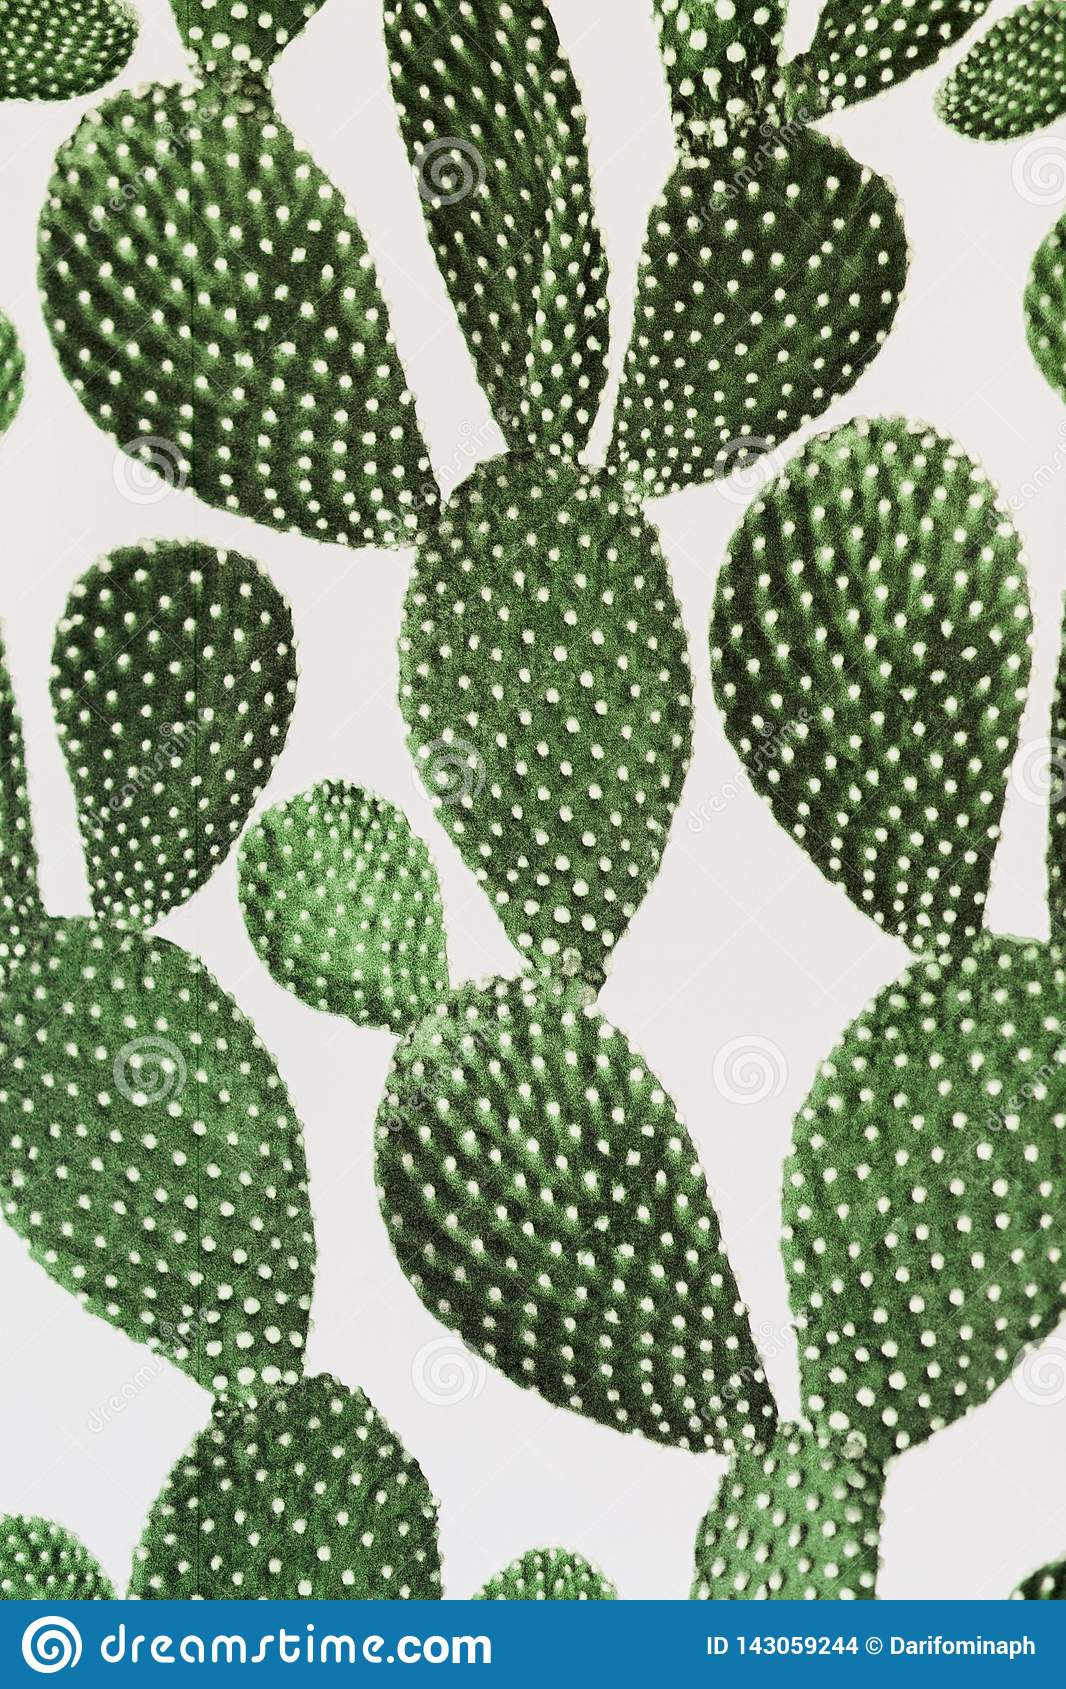 Green cactus surface. Use for texture or background